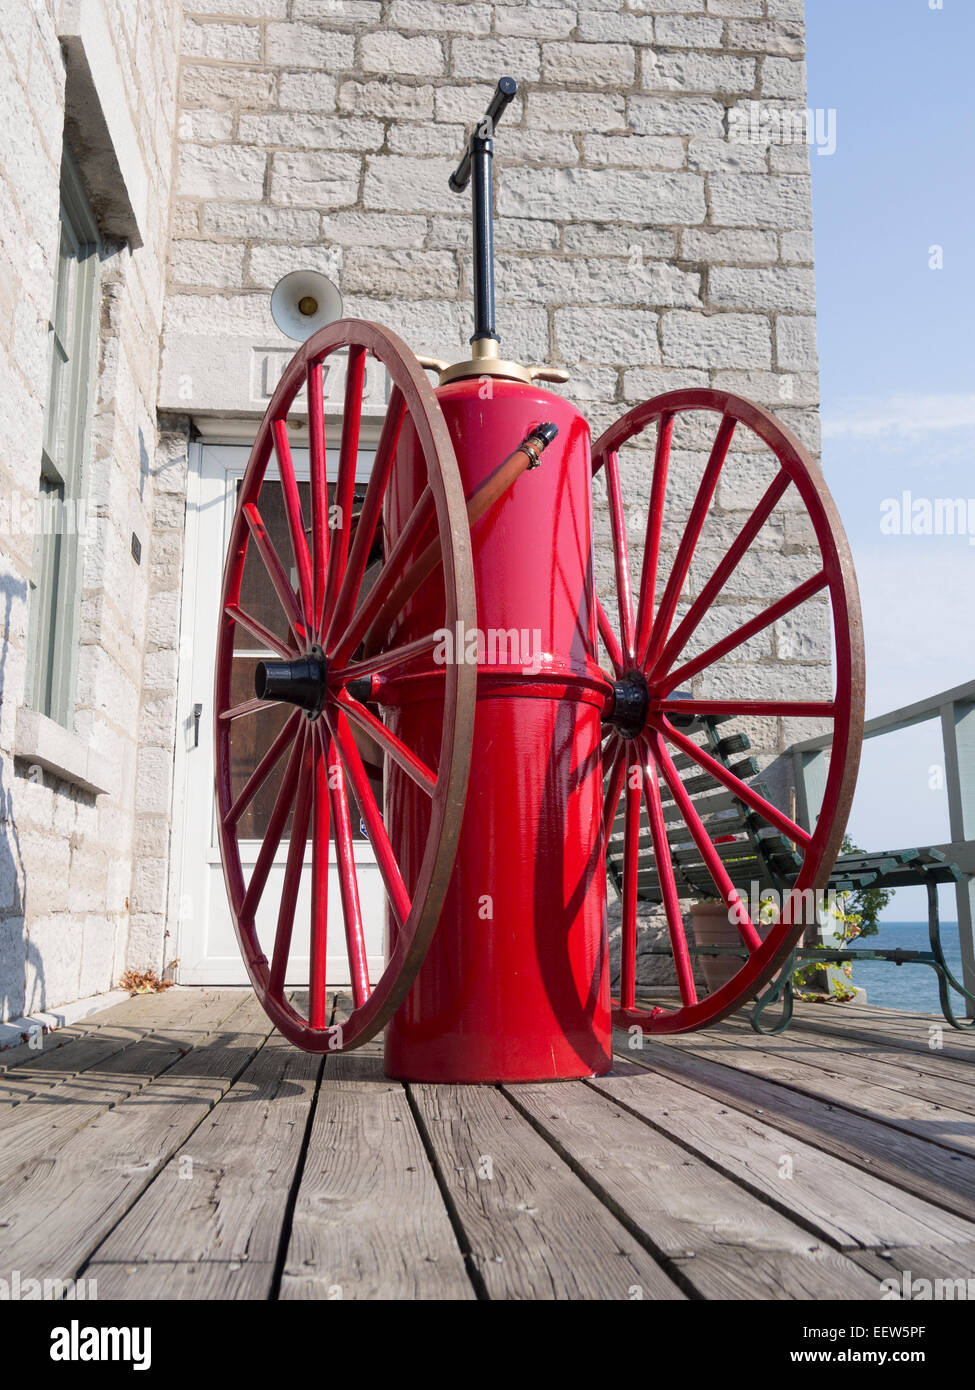 Antique fire fighting equipment in red. Antique hand pumped pressure tank on wheels for fire fighting on the porch - Stock Image